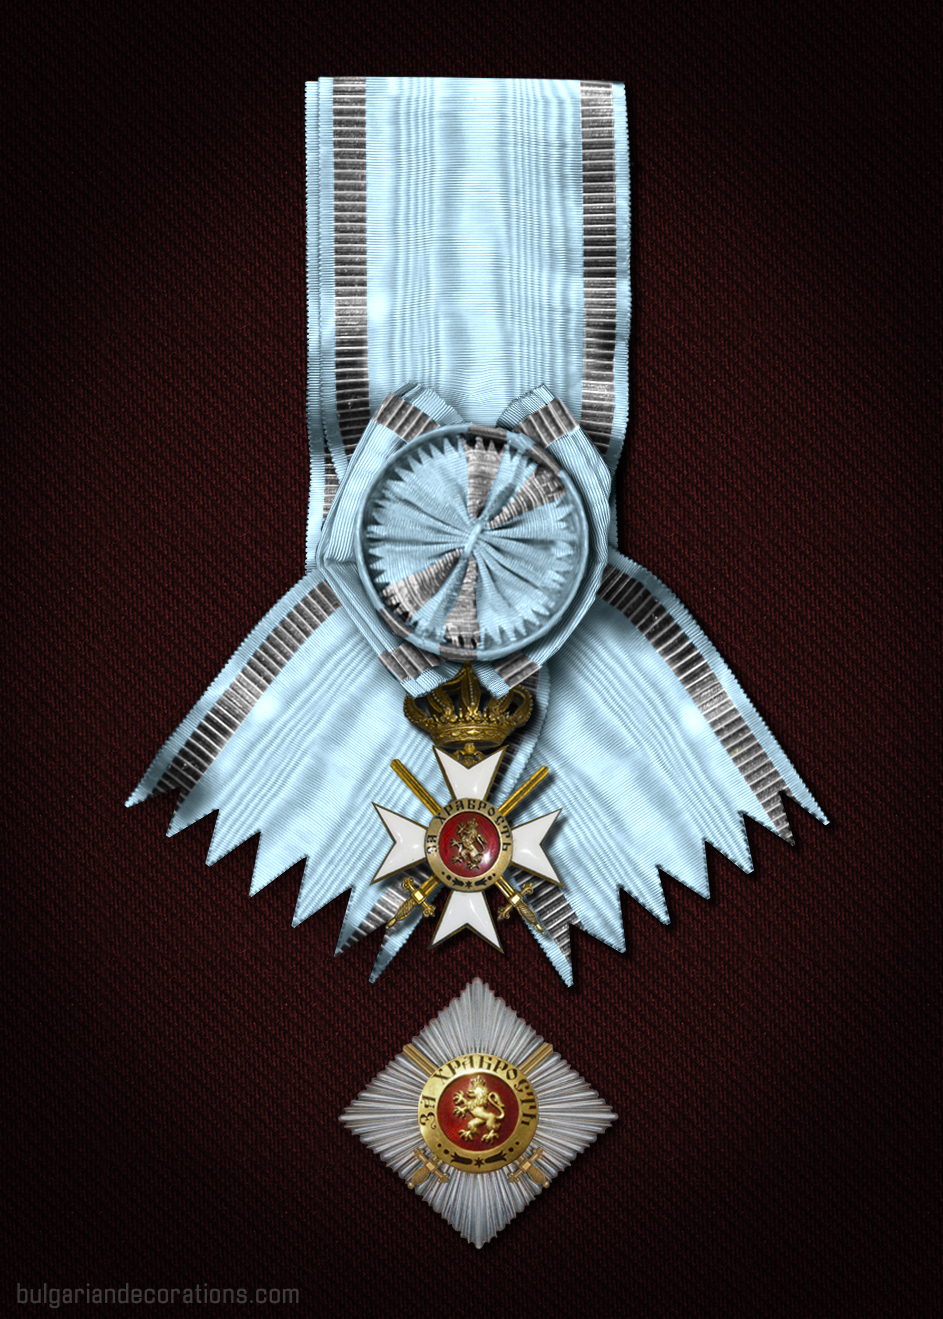 Prince Alexander I Grand cross set (reconstruction)